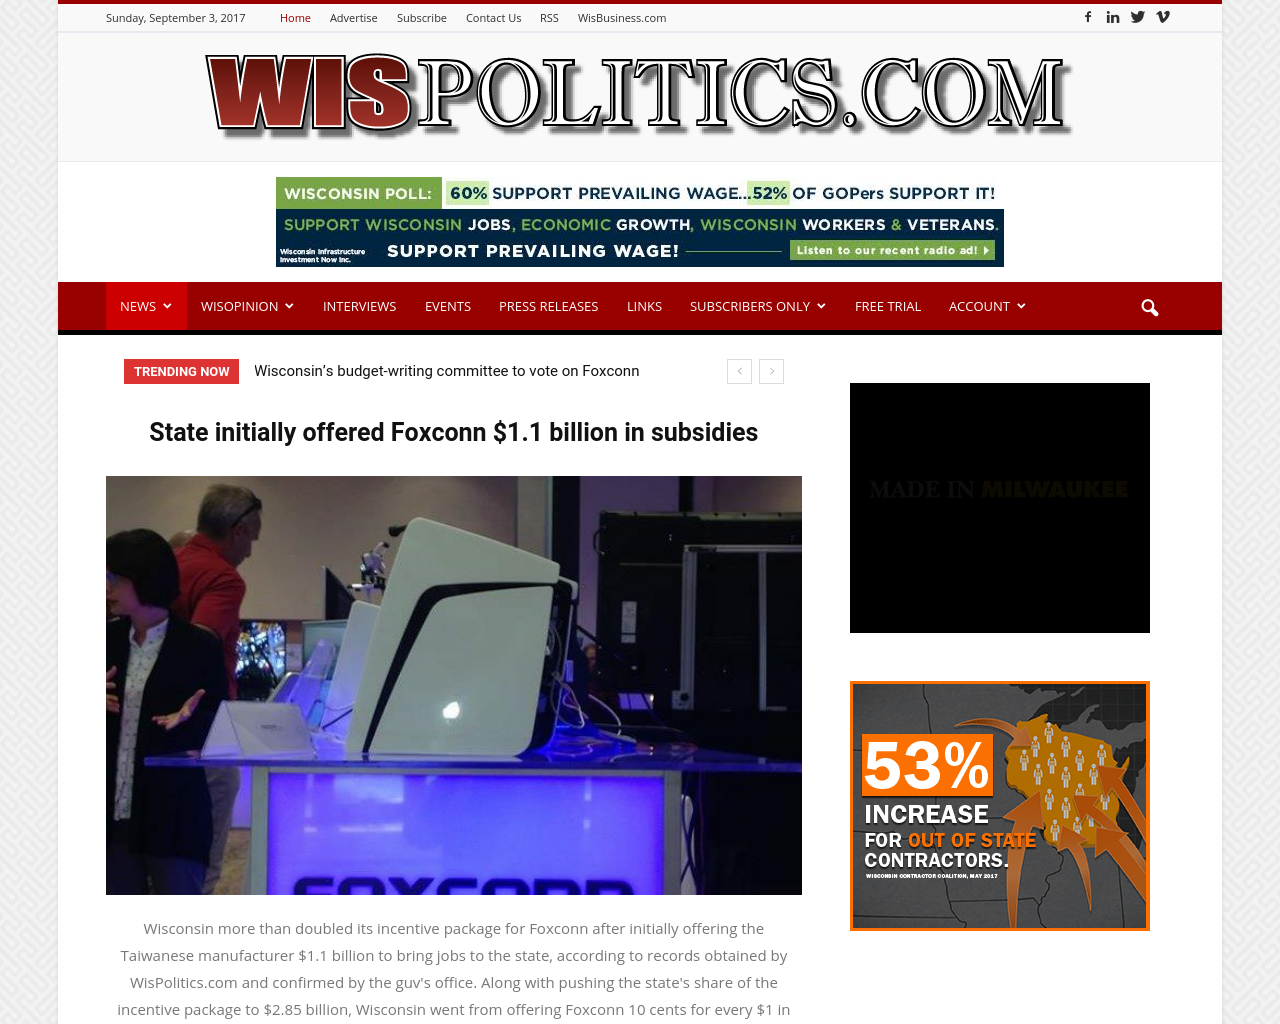 WisPolitics.com-Advertising-Reviews-Pricing